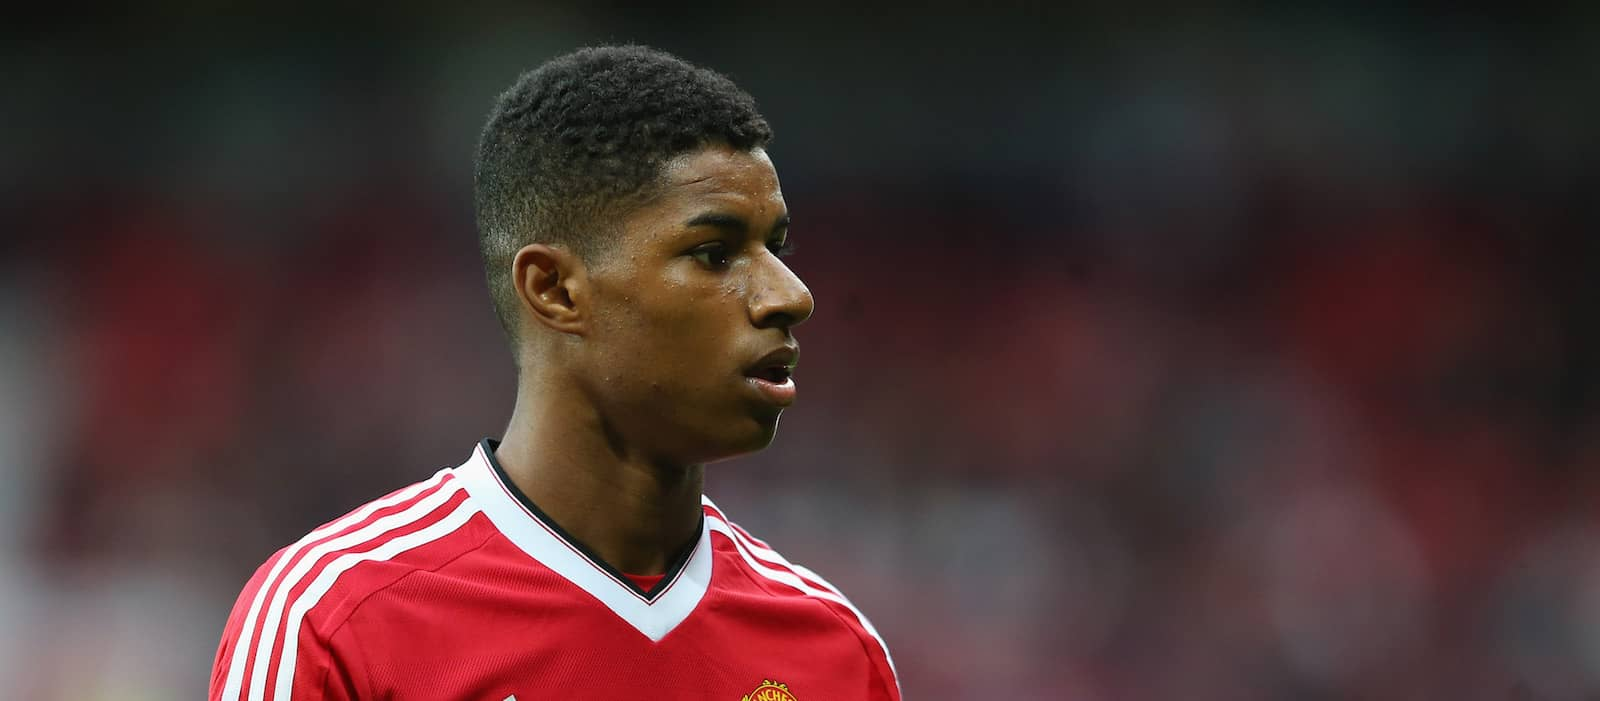 Pele wishes Marcus Rashford luck ahead of European Championships